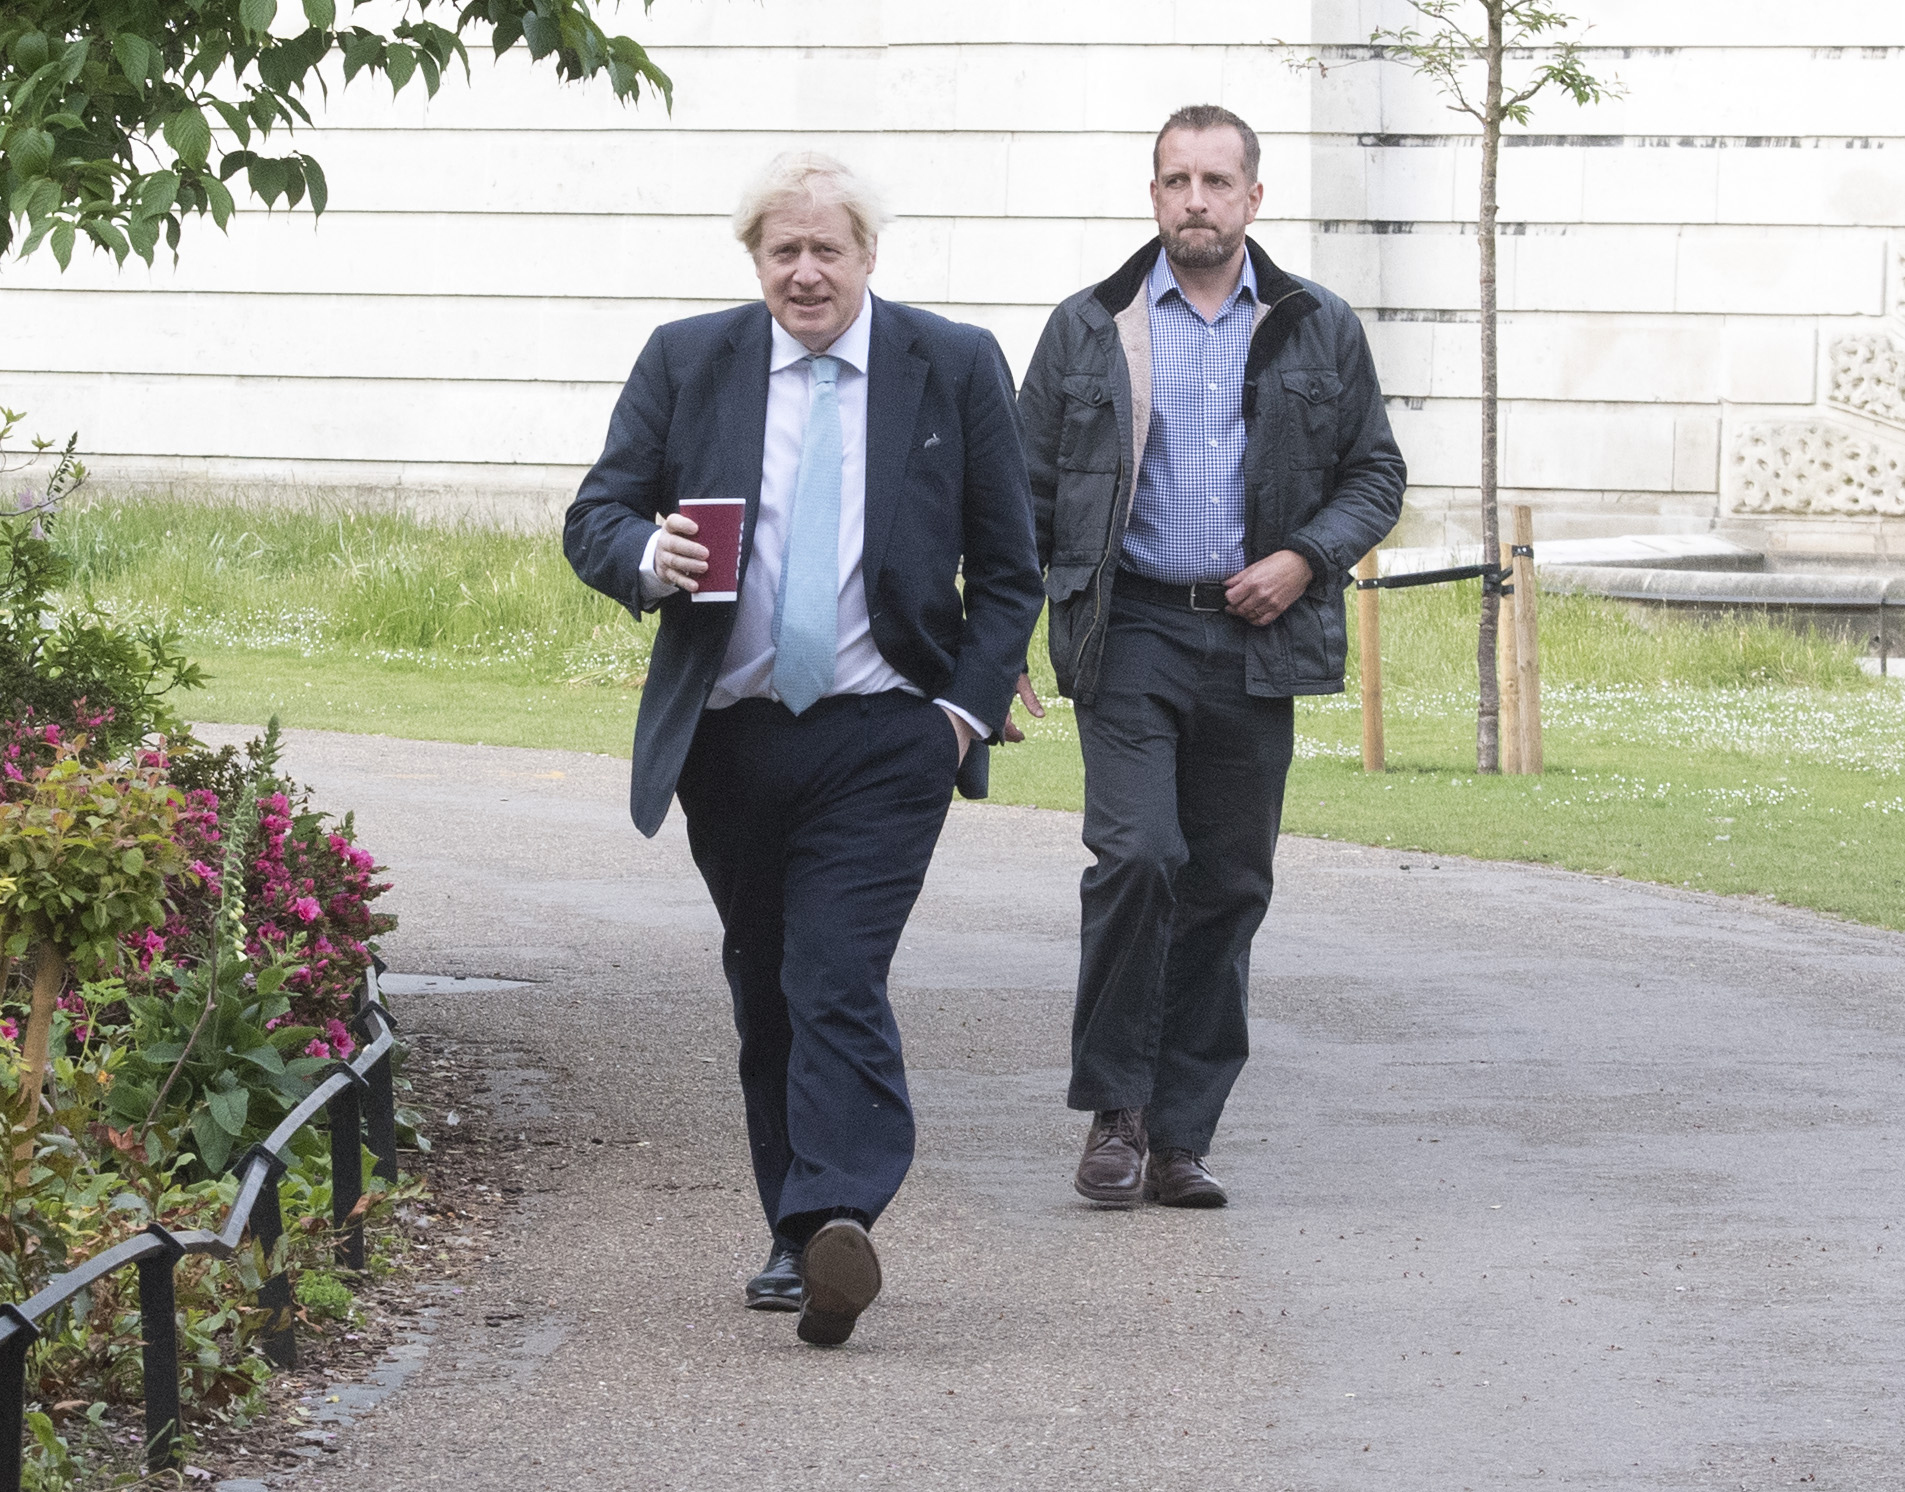 Prime Minister Boris Johnson takes a morning walk in St James' Park in London before returning to Downing Street, as the UK enters a seventh week of lockdown to help stop the spread of coronavirus.